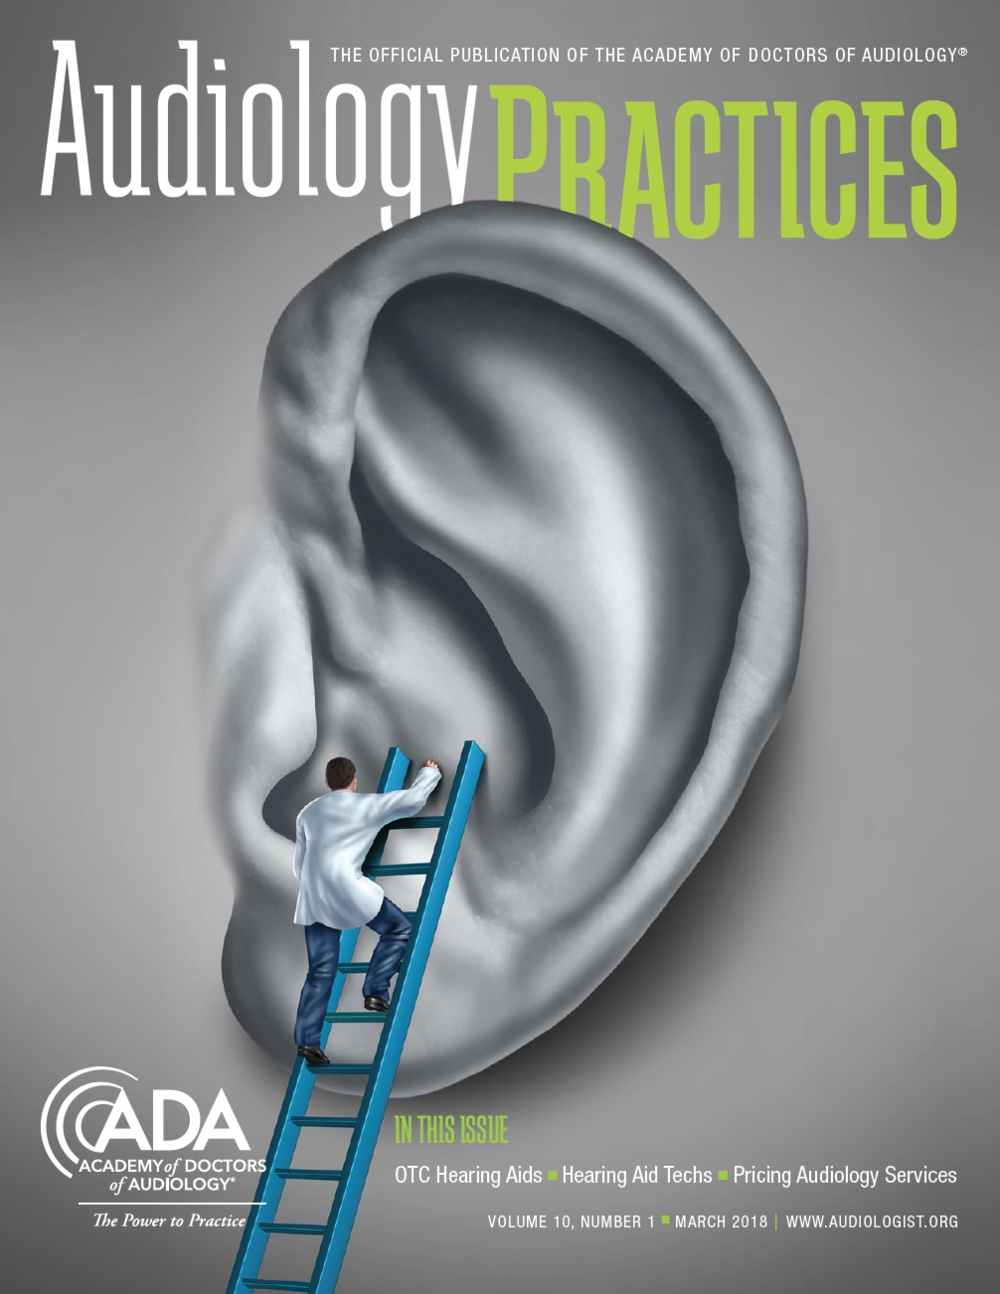 Audiology Practices March 2018 cover.png